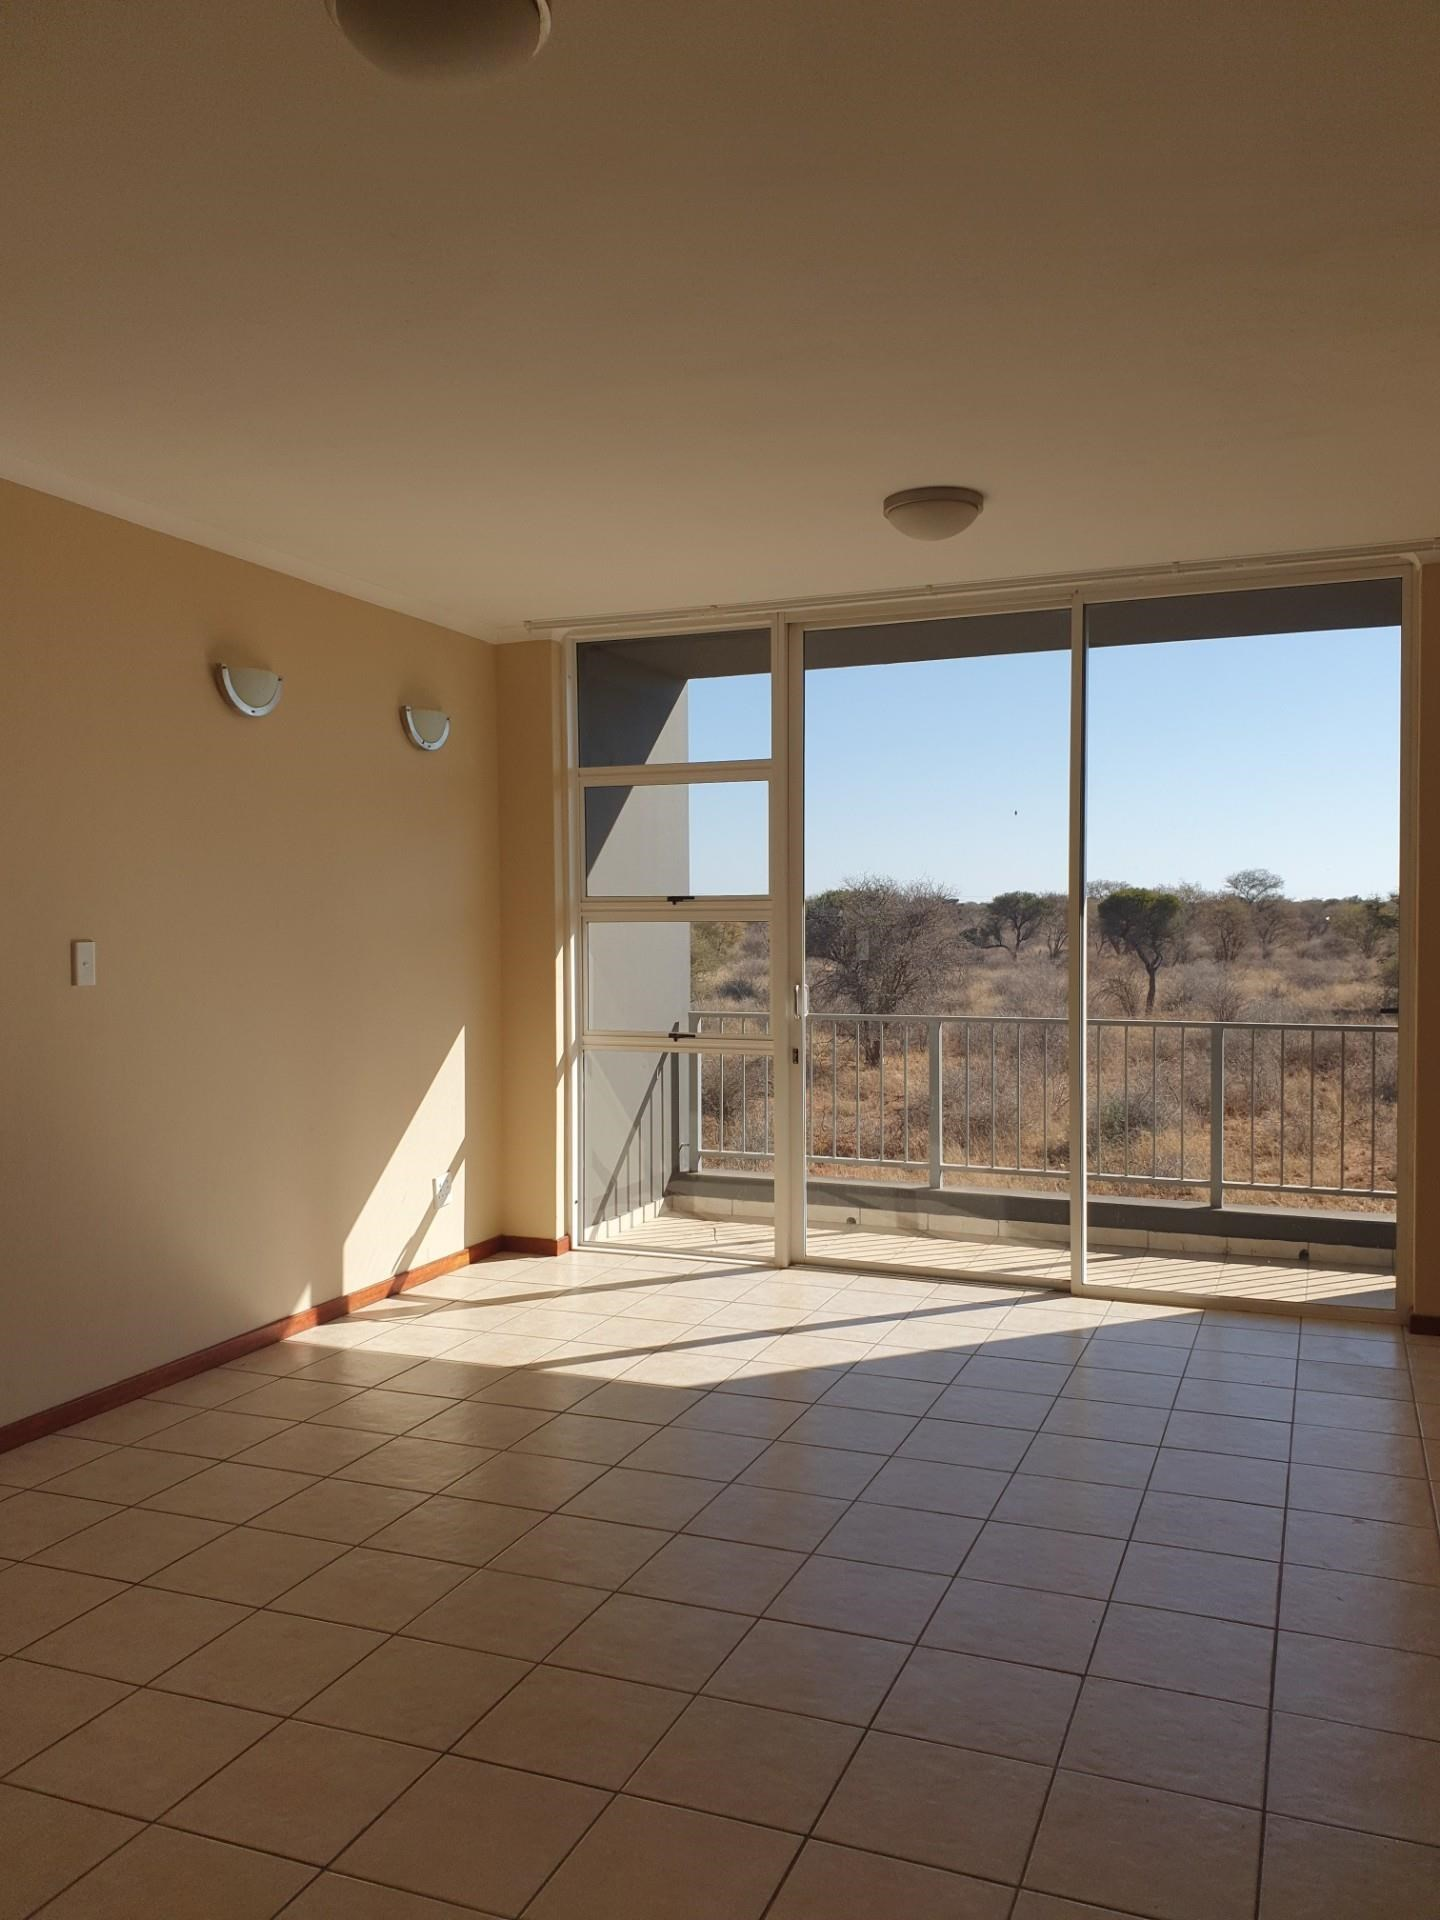 2 Bedroom House for Sale in Lephalale